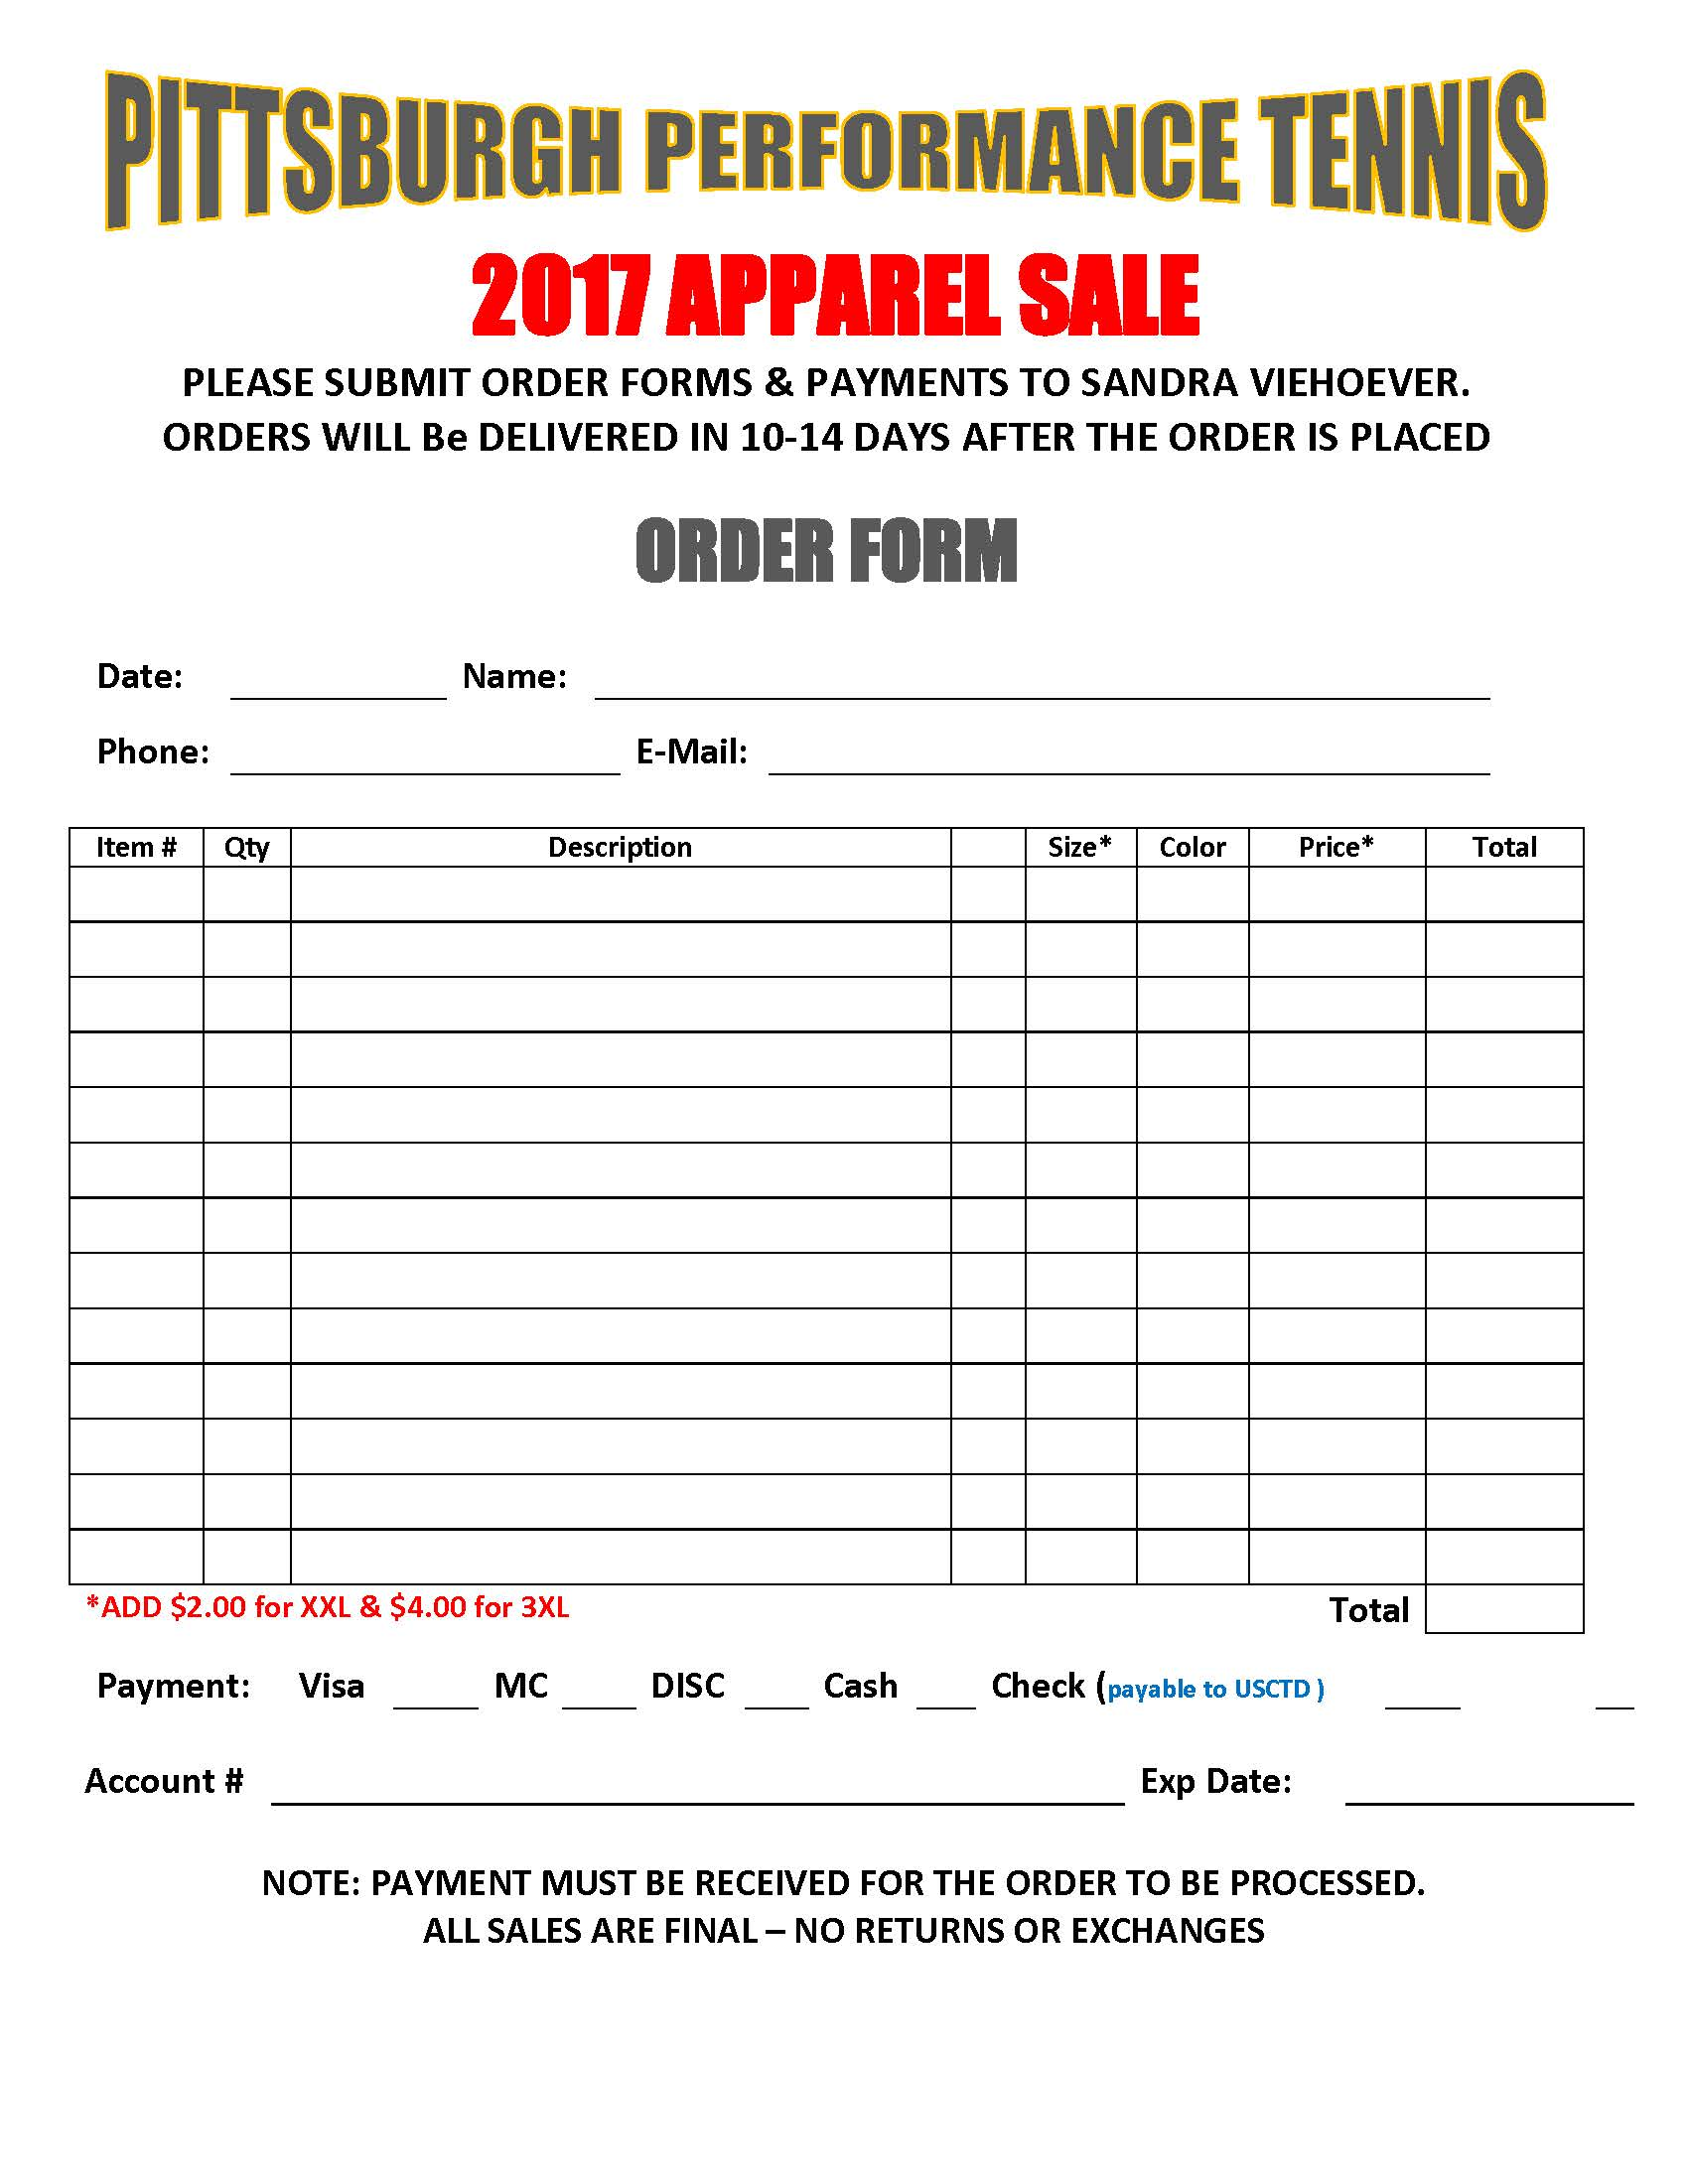 USC TENNIS Order Form 2017 Page 3